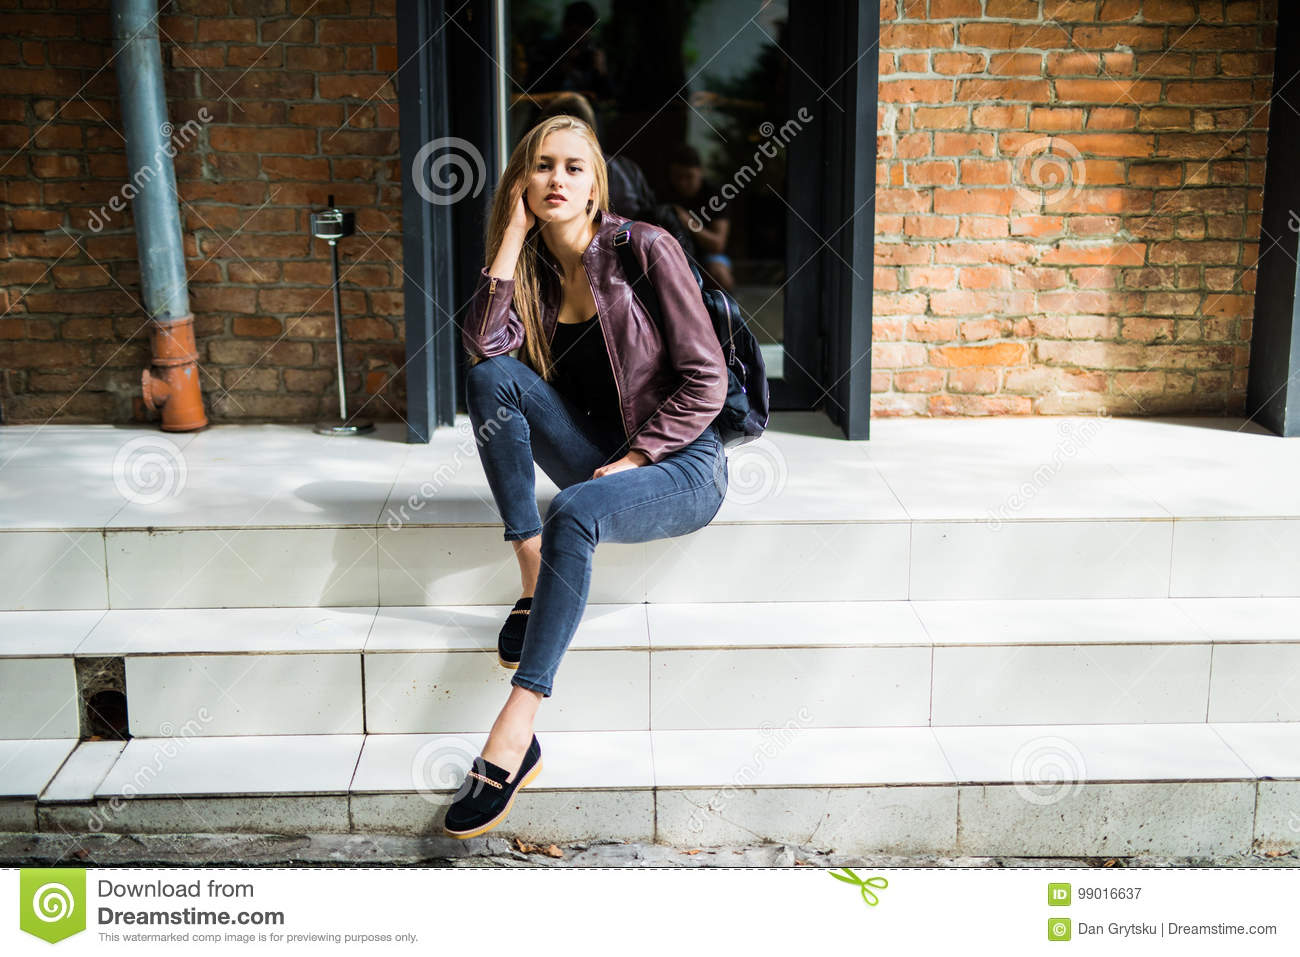 Casual style. Stylish woman in sunglasses sitting on the stone stairs. She dressed in jacket, skinny jeans and shoes. Long hair, e